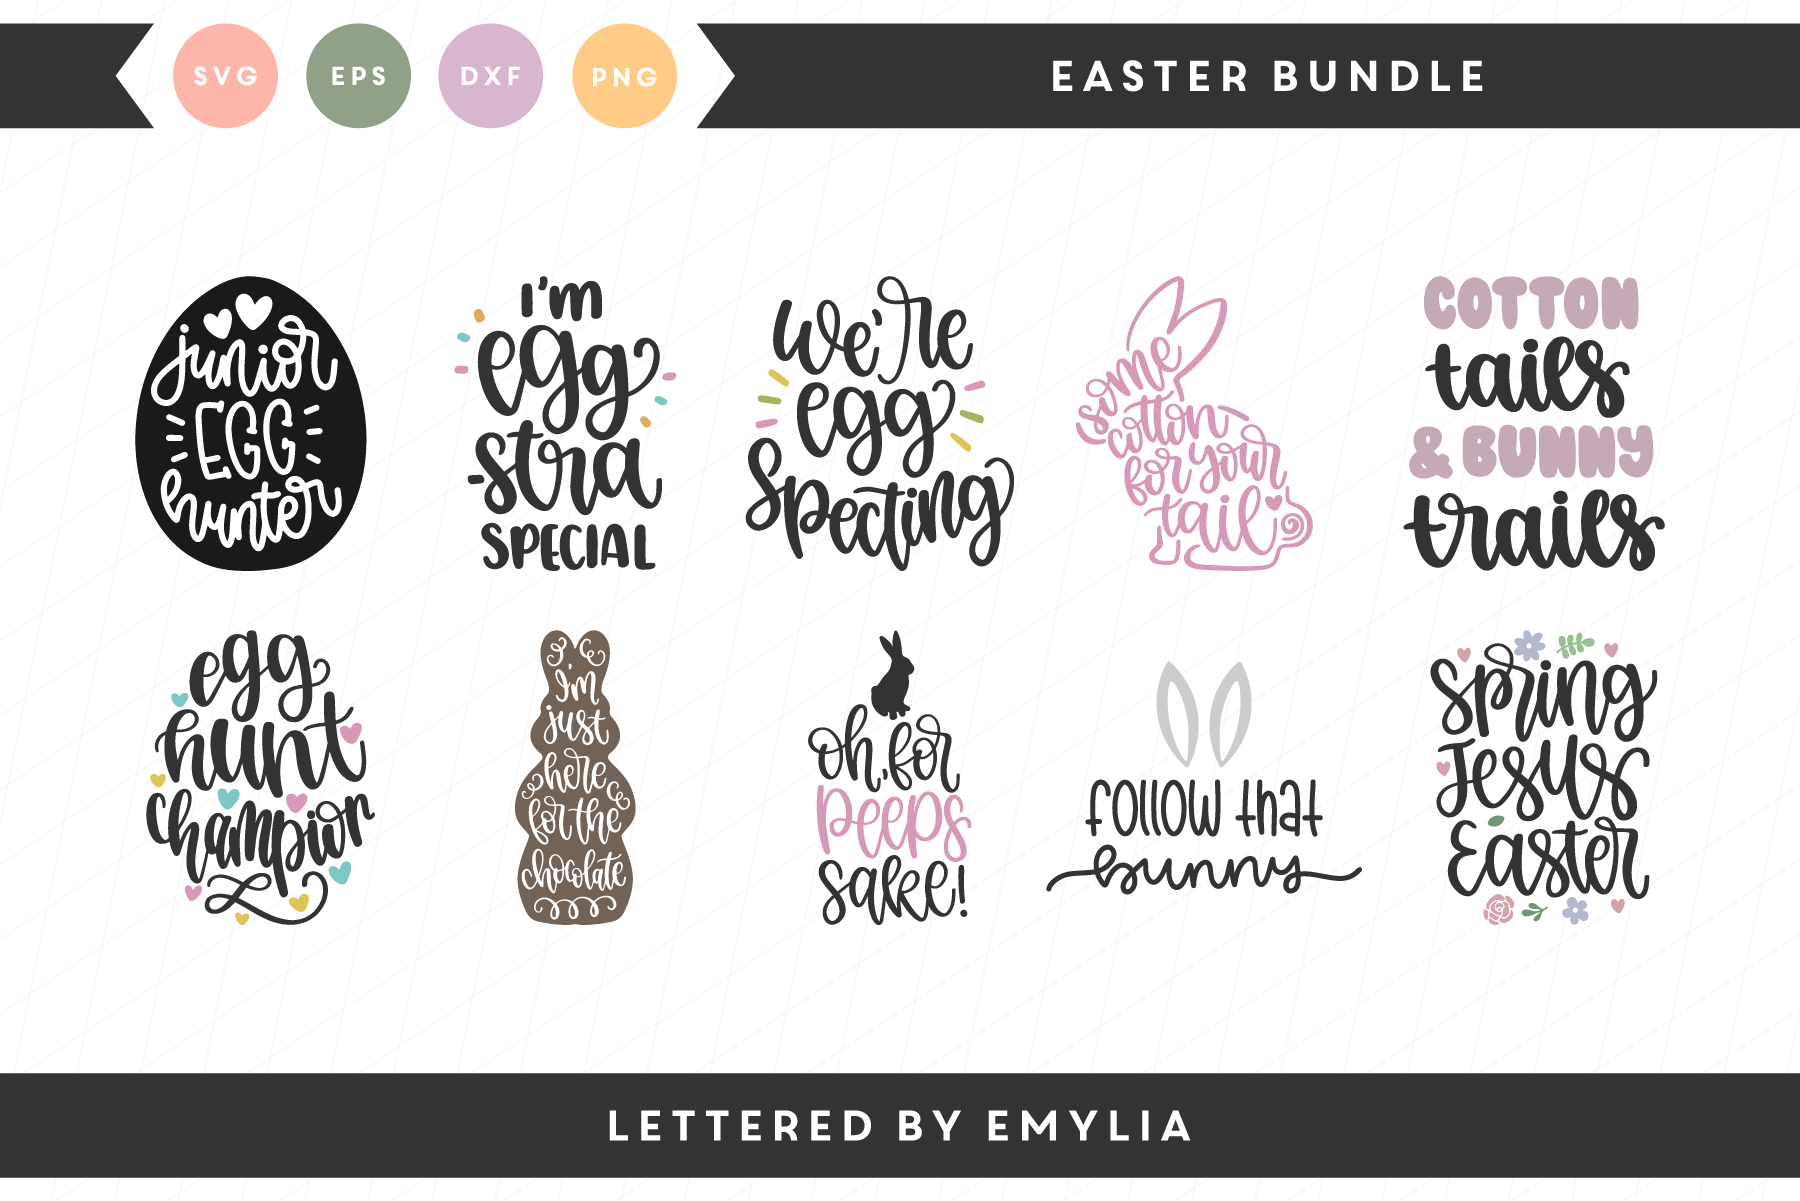 Download Free Easter Bundle Graphic By Lettered By Emylia Creative Fabrica for Cricut Explore, Silhouette and other cutting machines.